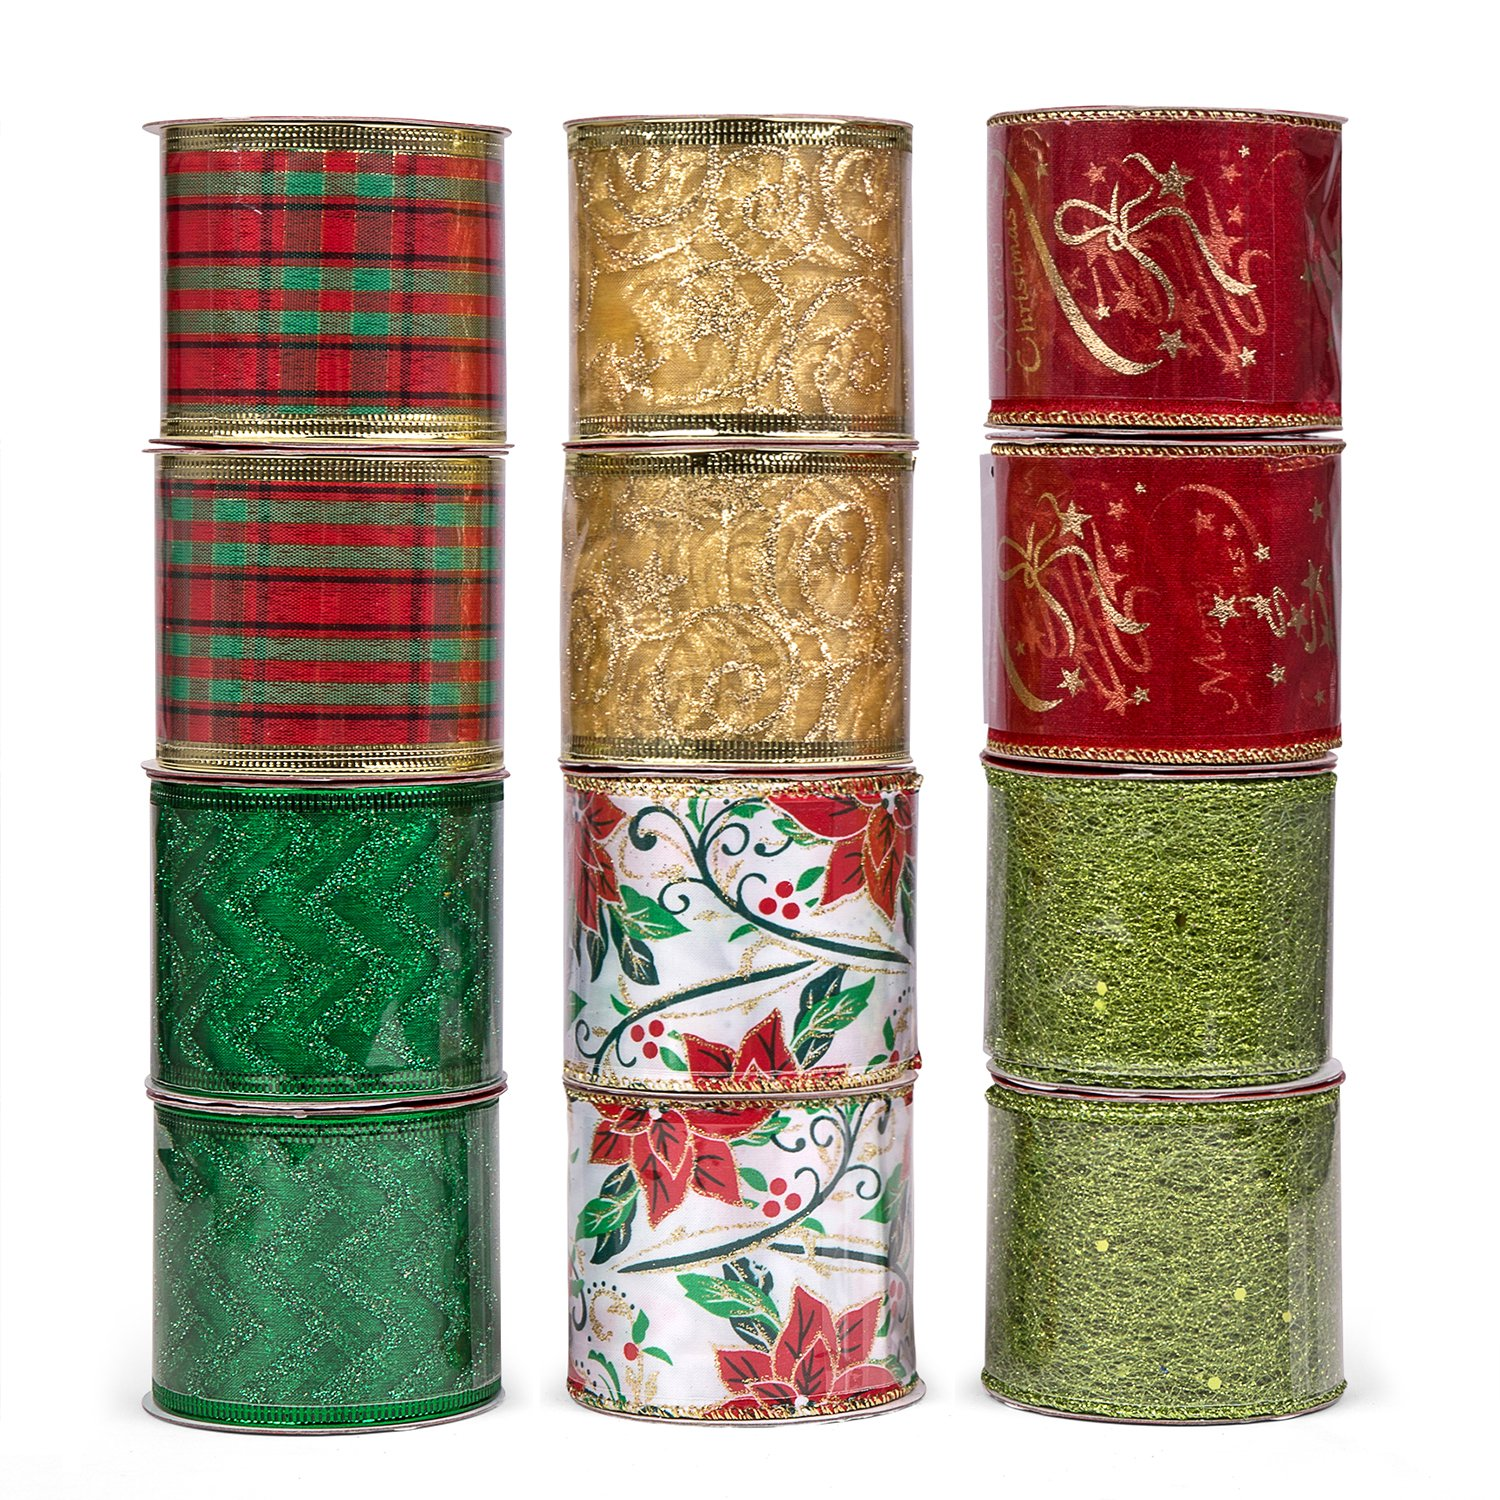 iPEGTOP Wired Christmas Ribbon, Assorted Shimmer Organza Glitter Gift Wrapping Ribbons Handcraft Decorations, 36 Yards (12 Roll x 3 yd) by 2.5 inch, Floral Poinsettia Plaid